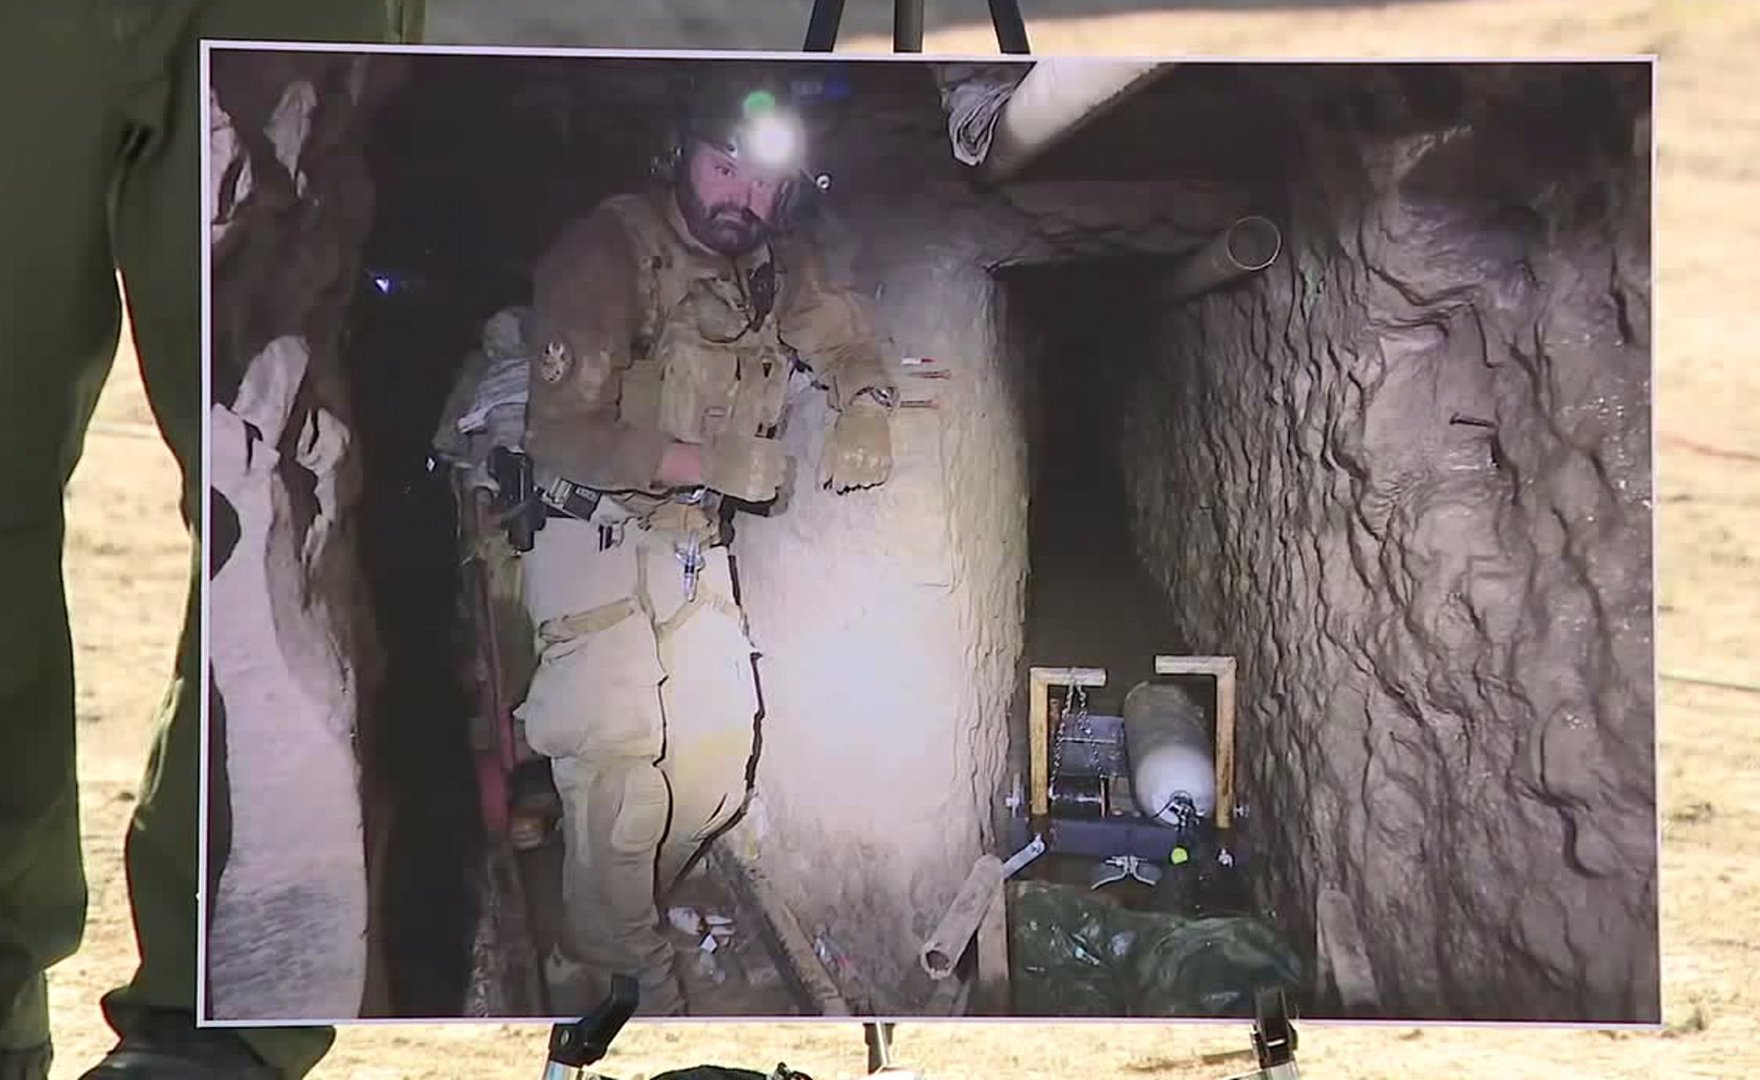 CBP officials released this image of the tunnel at a news conference on Jan. 29, 2020. (Credit: KSWB)